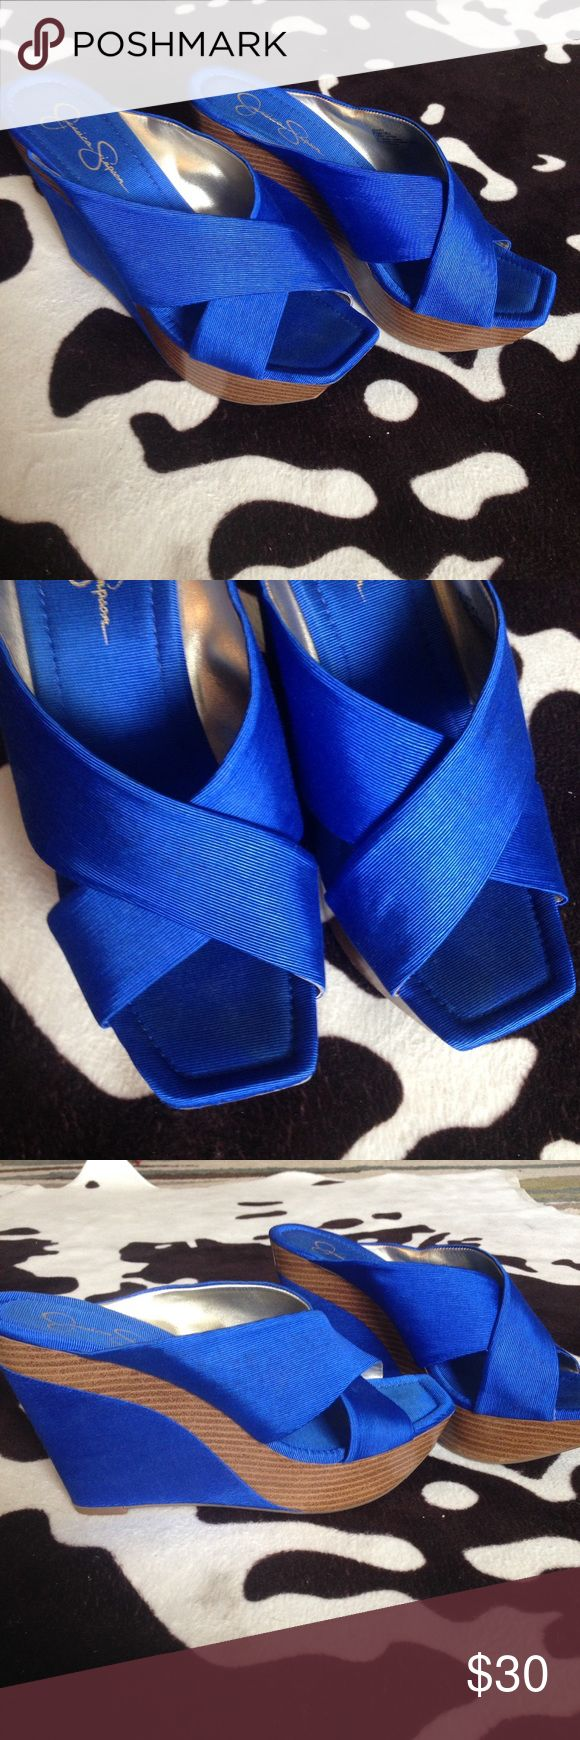 Jessica Simpson Blue Wedges 8.5 Jessica Simpson Wedges in a really pretty Blue. I loved how they looked and felt but they're too big for me.  There's a little dirty spot on the outside straps of the shoes- see pic. Jessica Simpson Shoes Heels